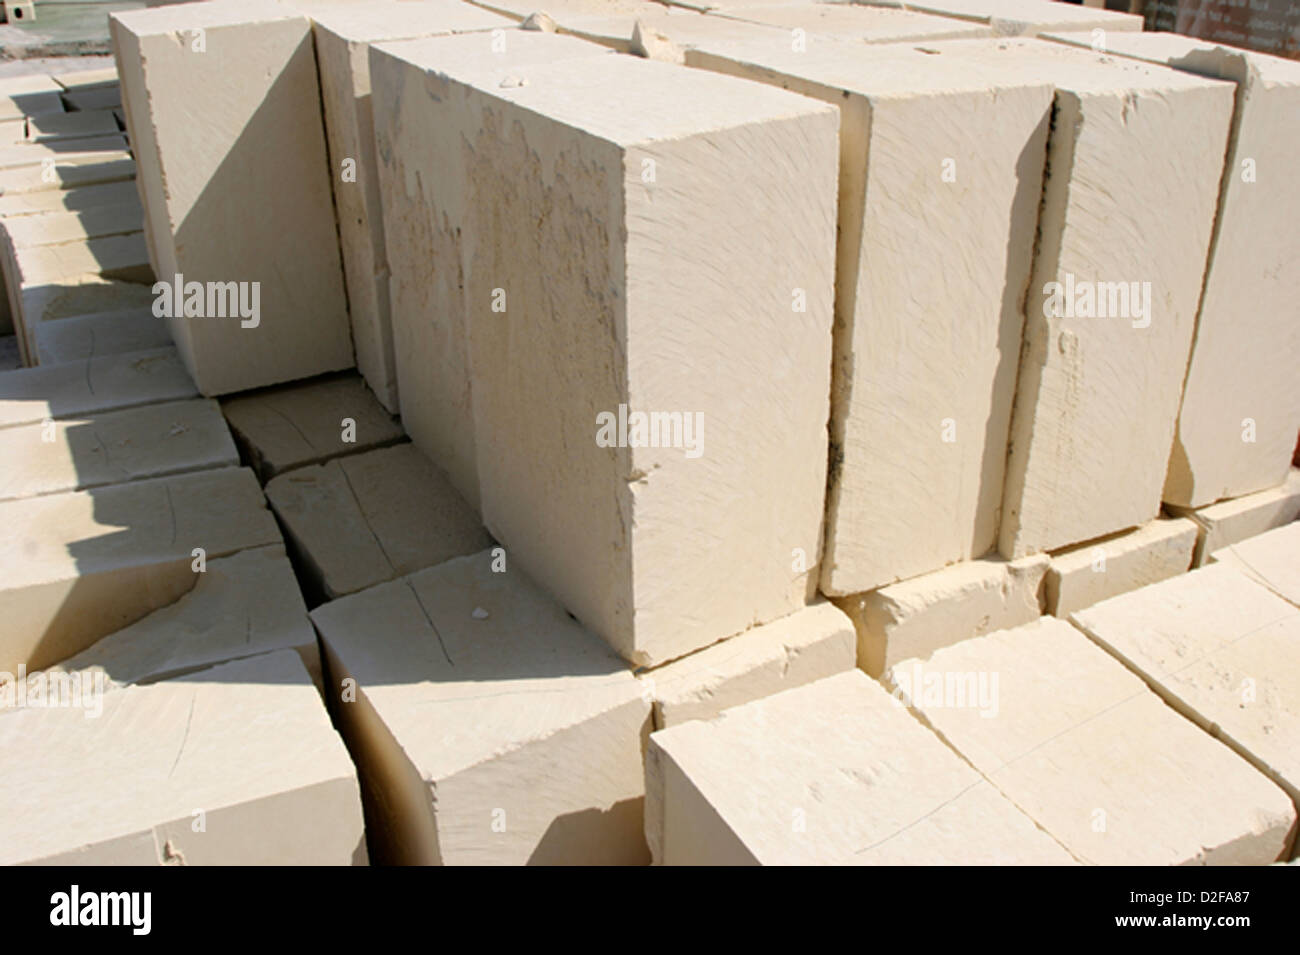 These Large Limestone Blocks Are Used By The Maltese For House Building They Stacked At Site Ready Use